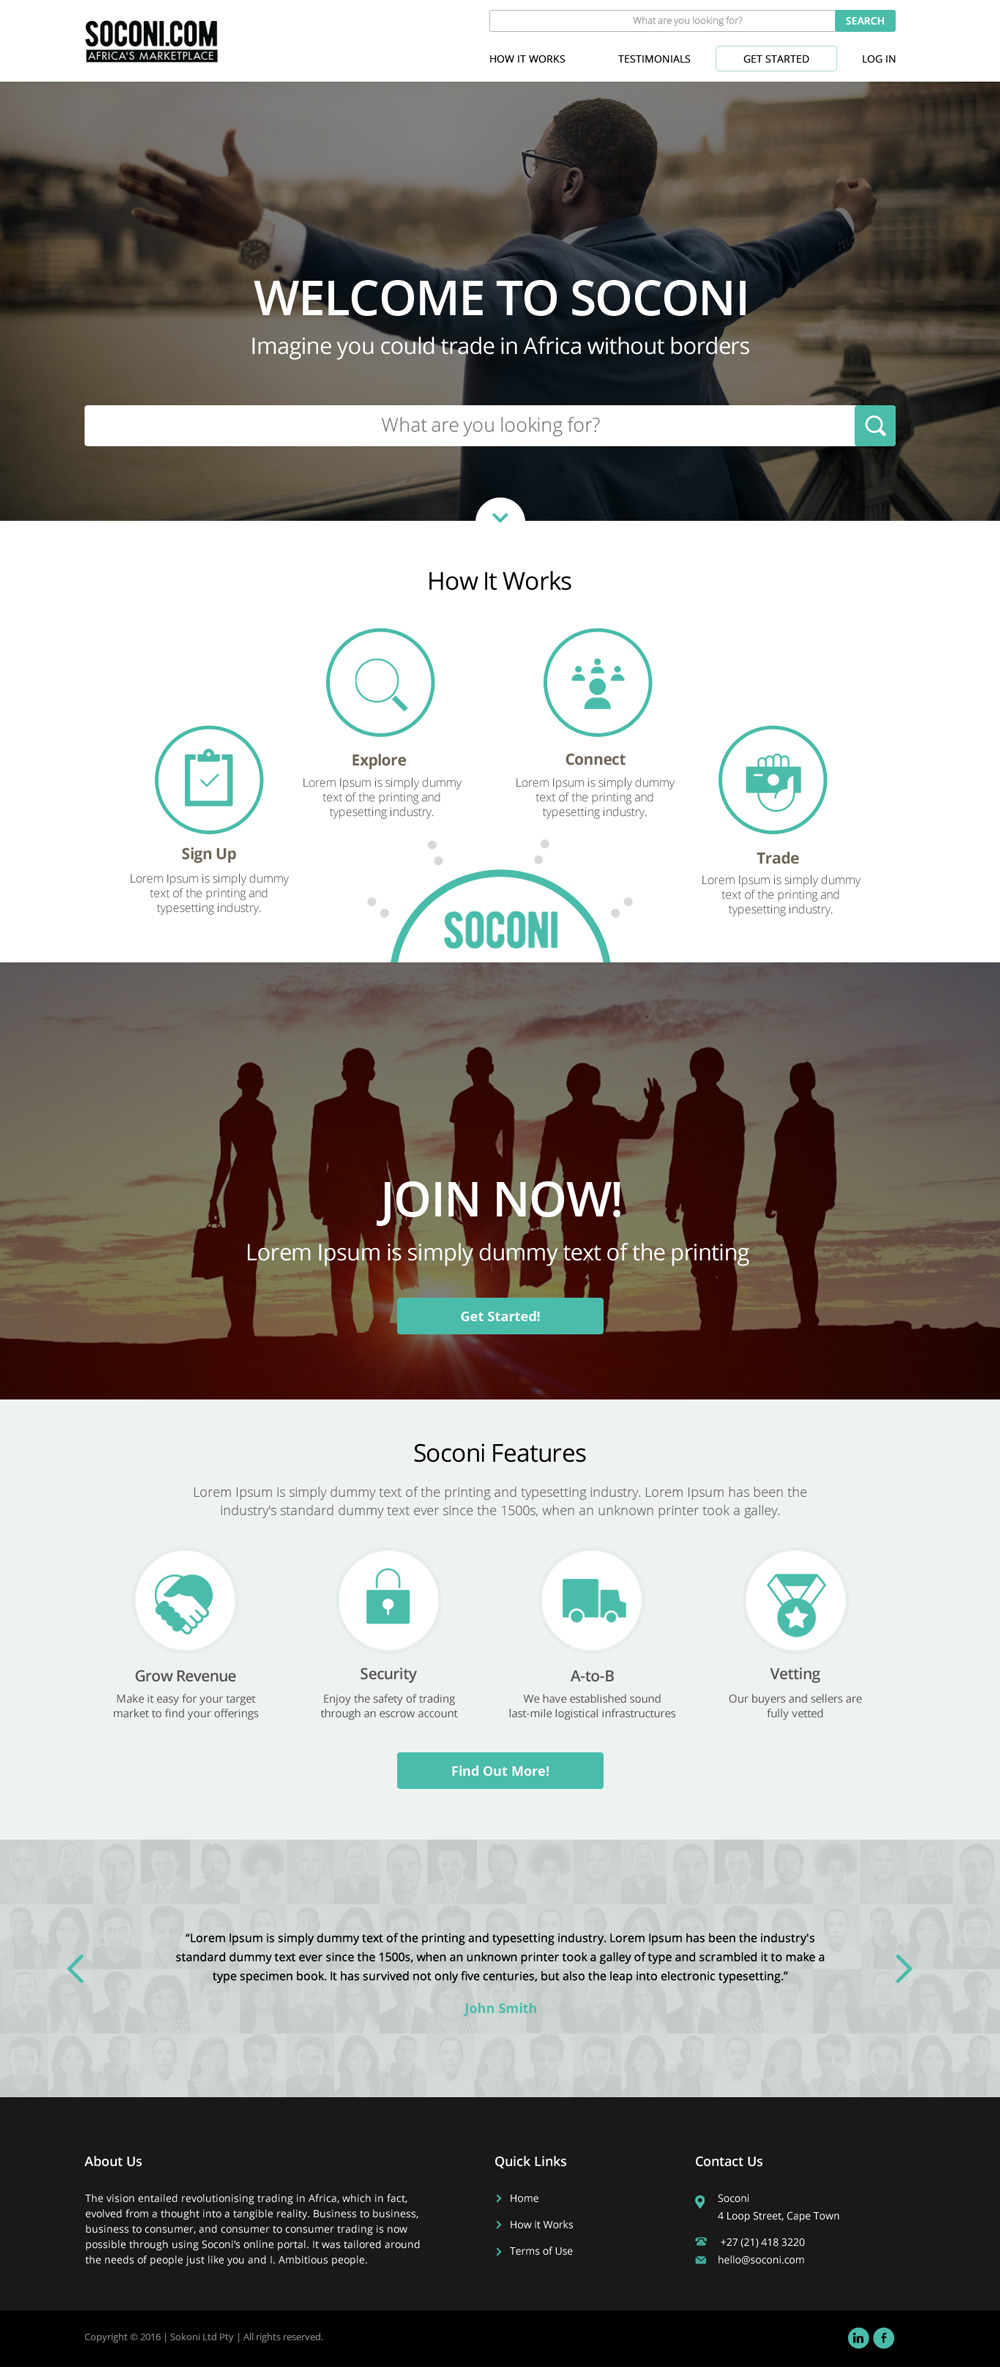 Soconi Web Page Designs logo design